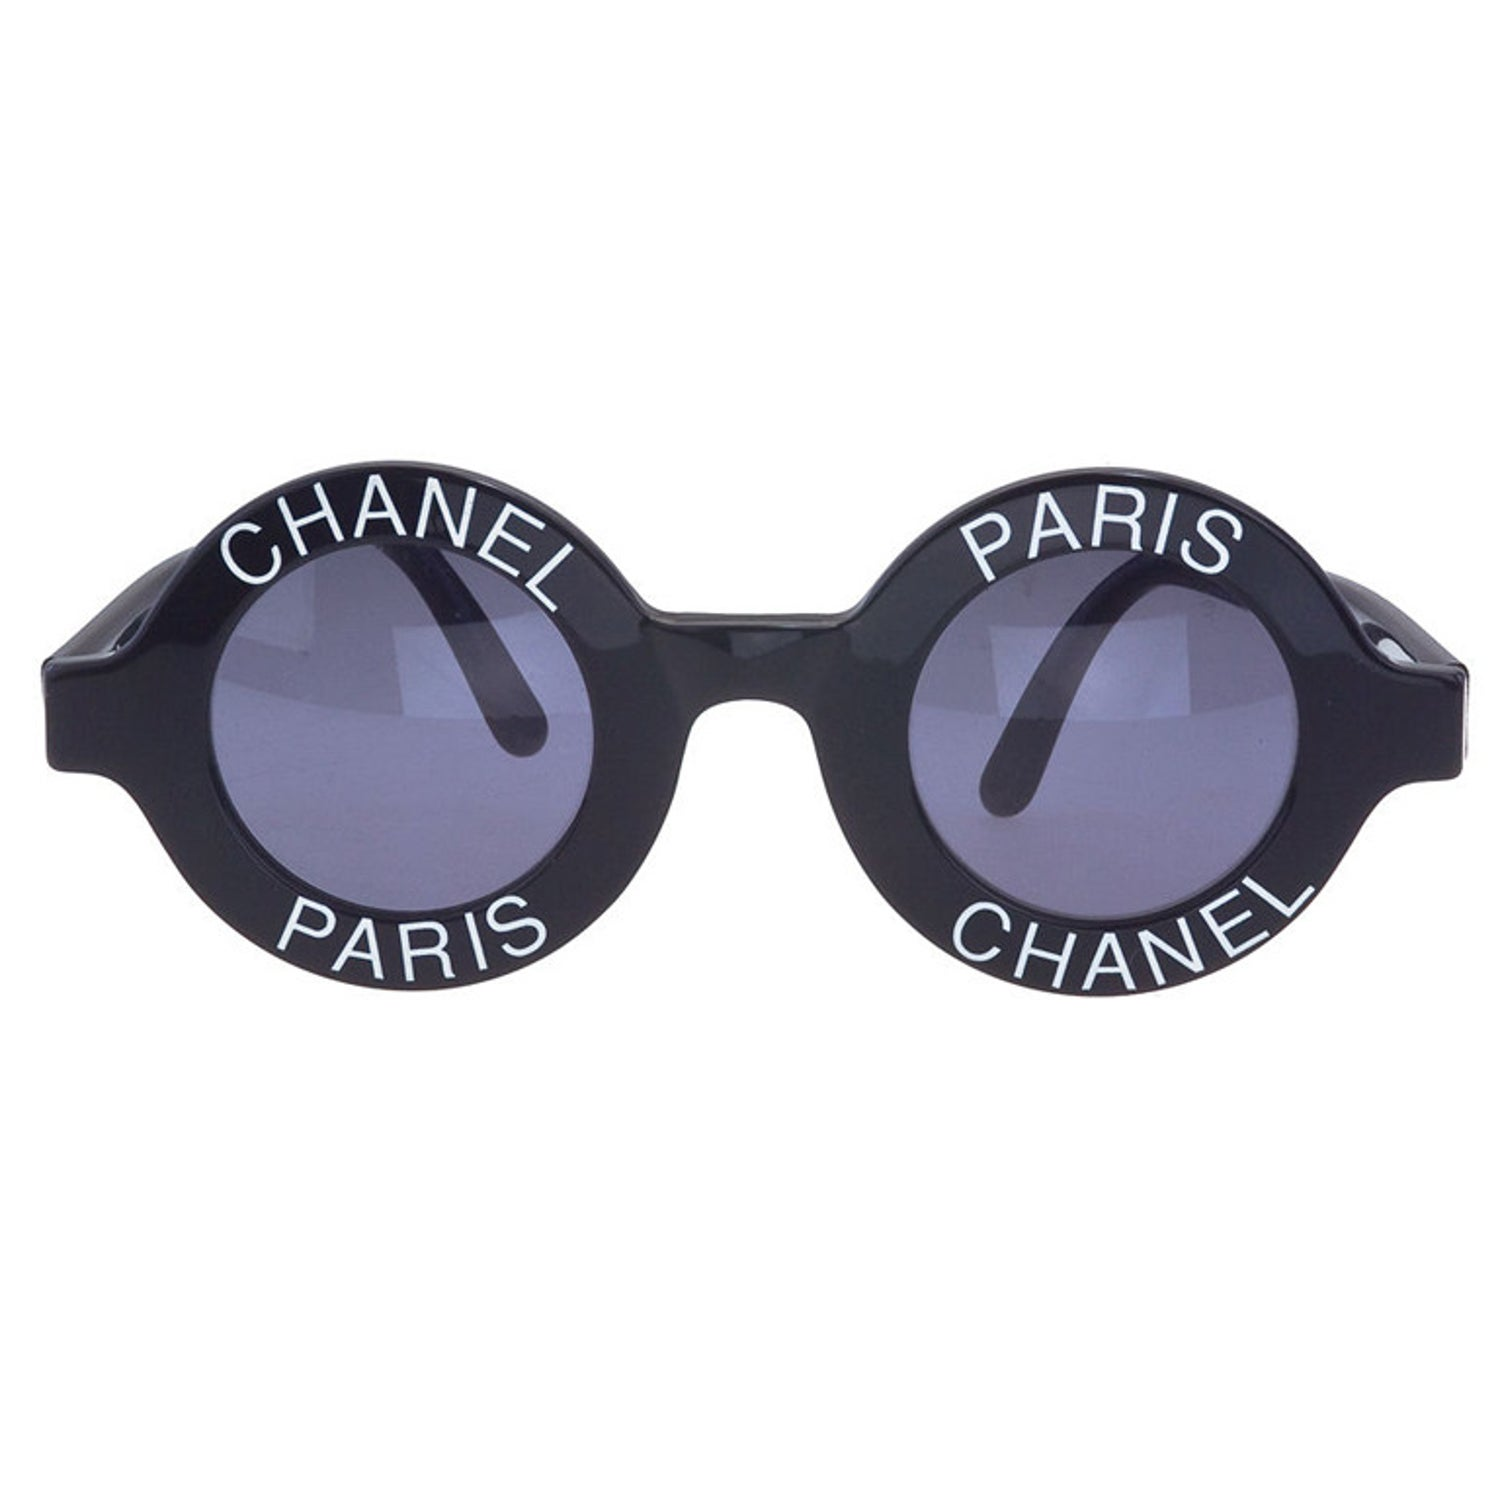 3c7621bf17 ... Chanel Chanel Paris Logo Frame Sunglasses at 1stdibs Source · Buy  Chanel White 4054 Pearl Rimless Sunglasses 41338 at best price TLC